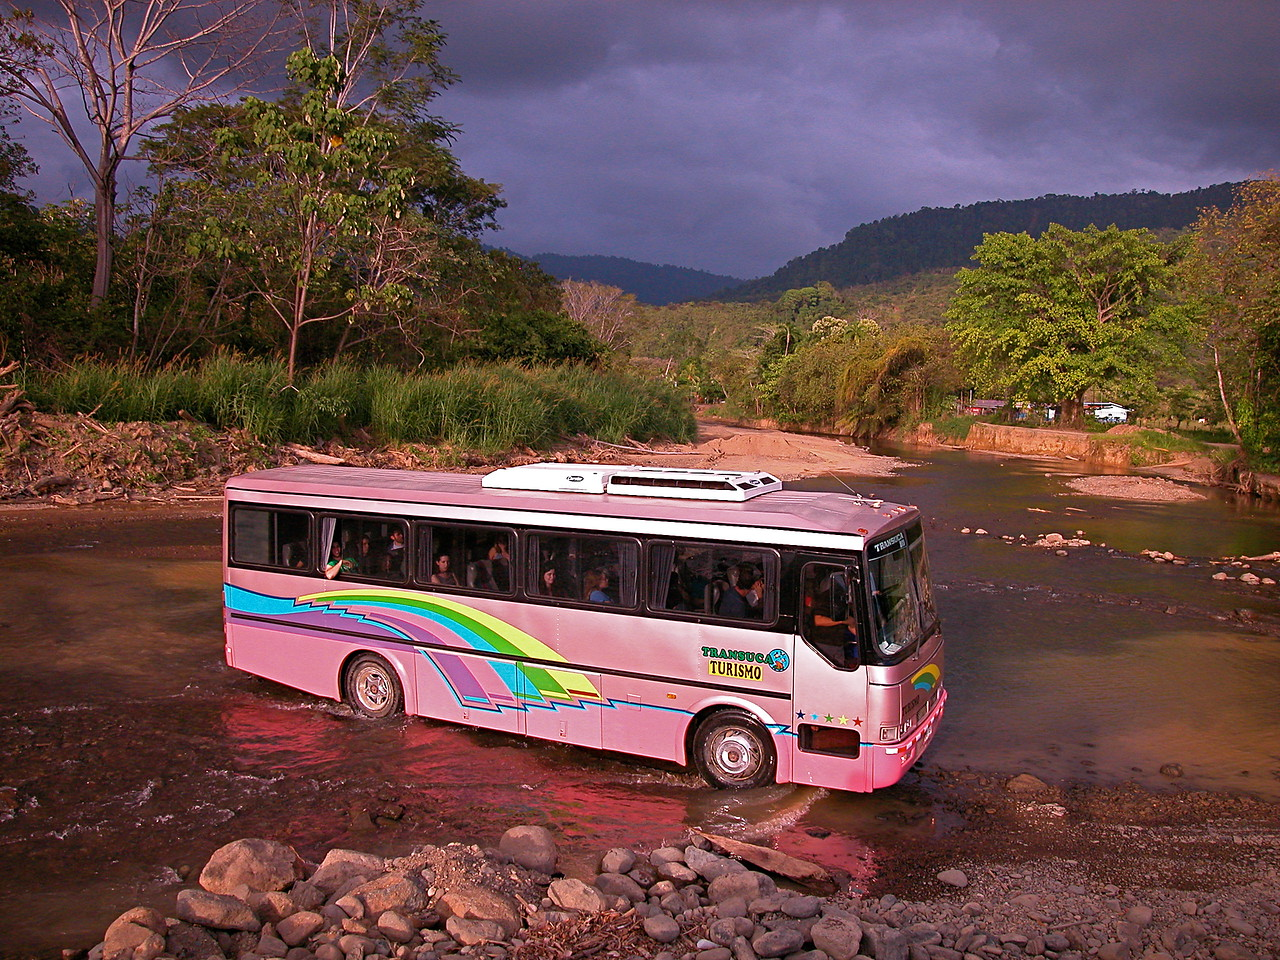 Dry season river crossing, Southern Pacific coast of Costa Rica.